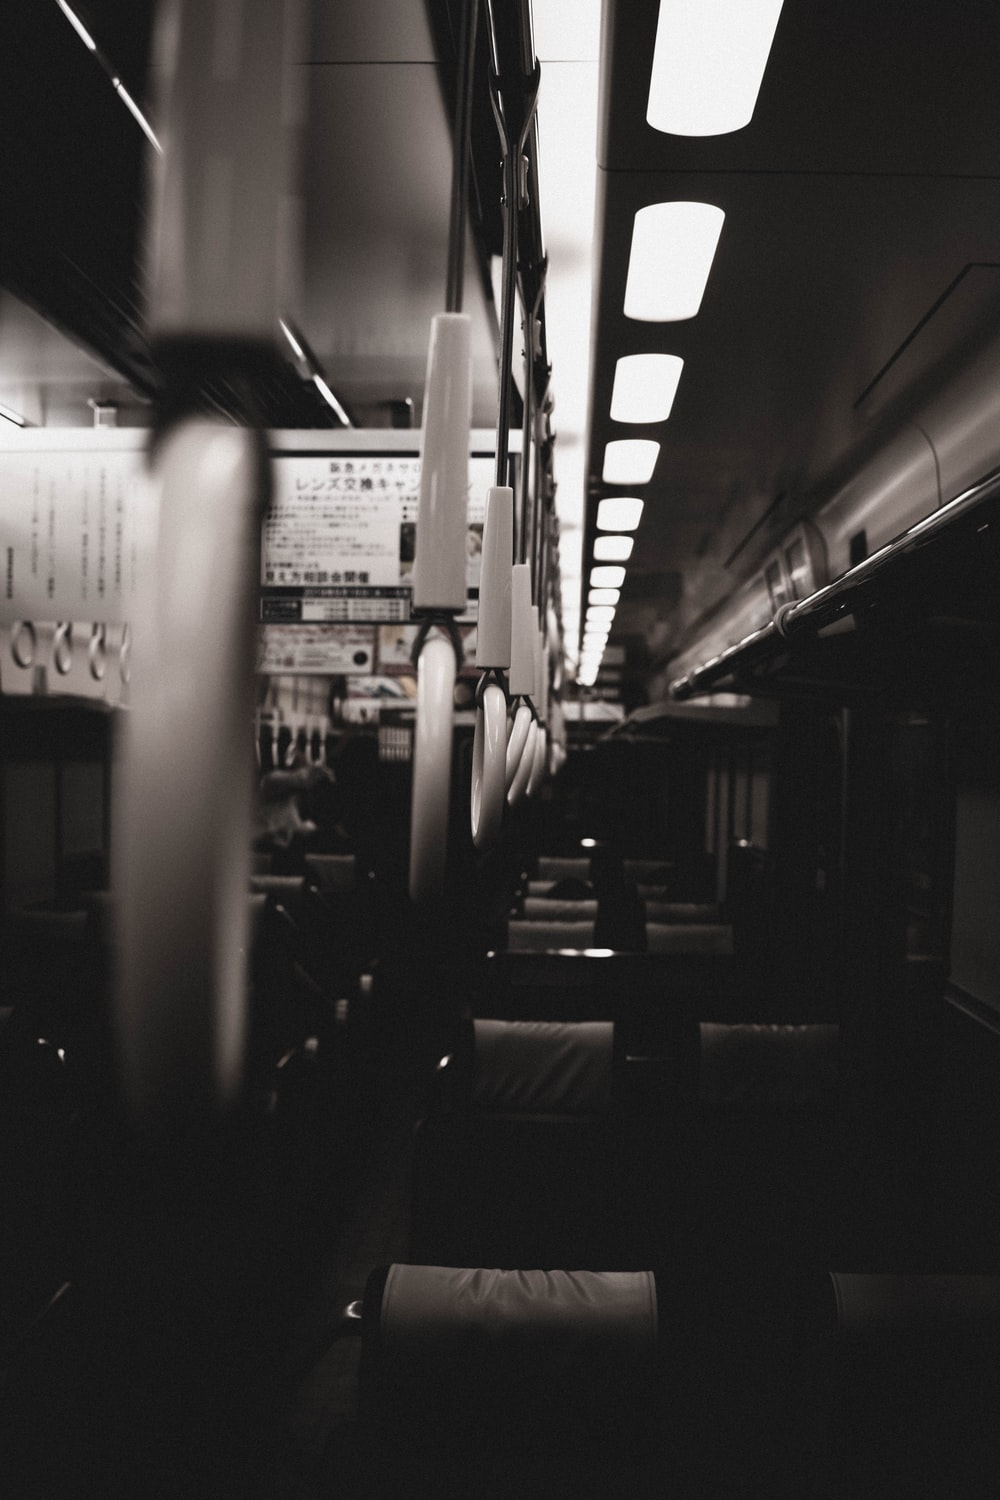 grayscale photography of inside bus view